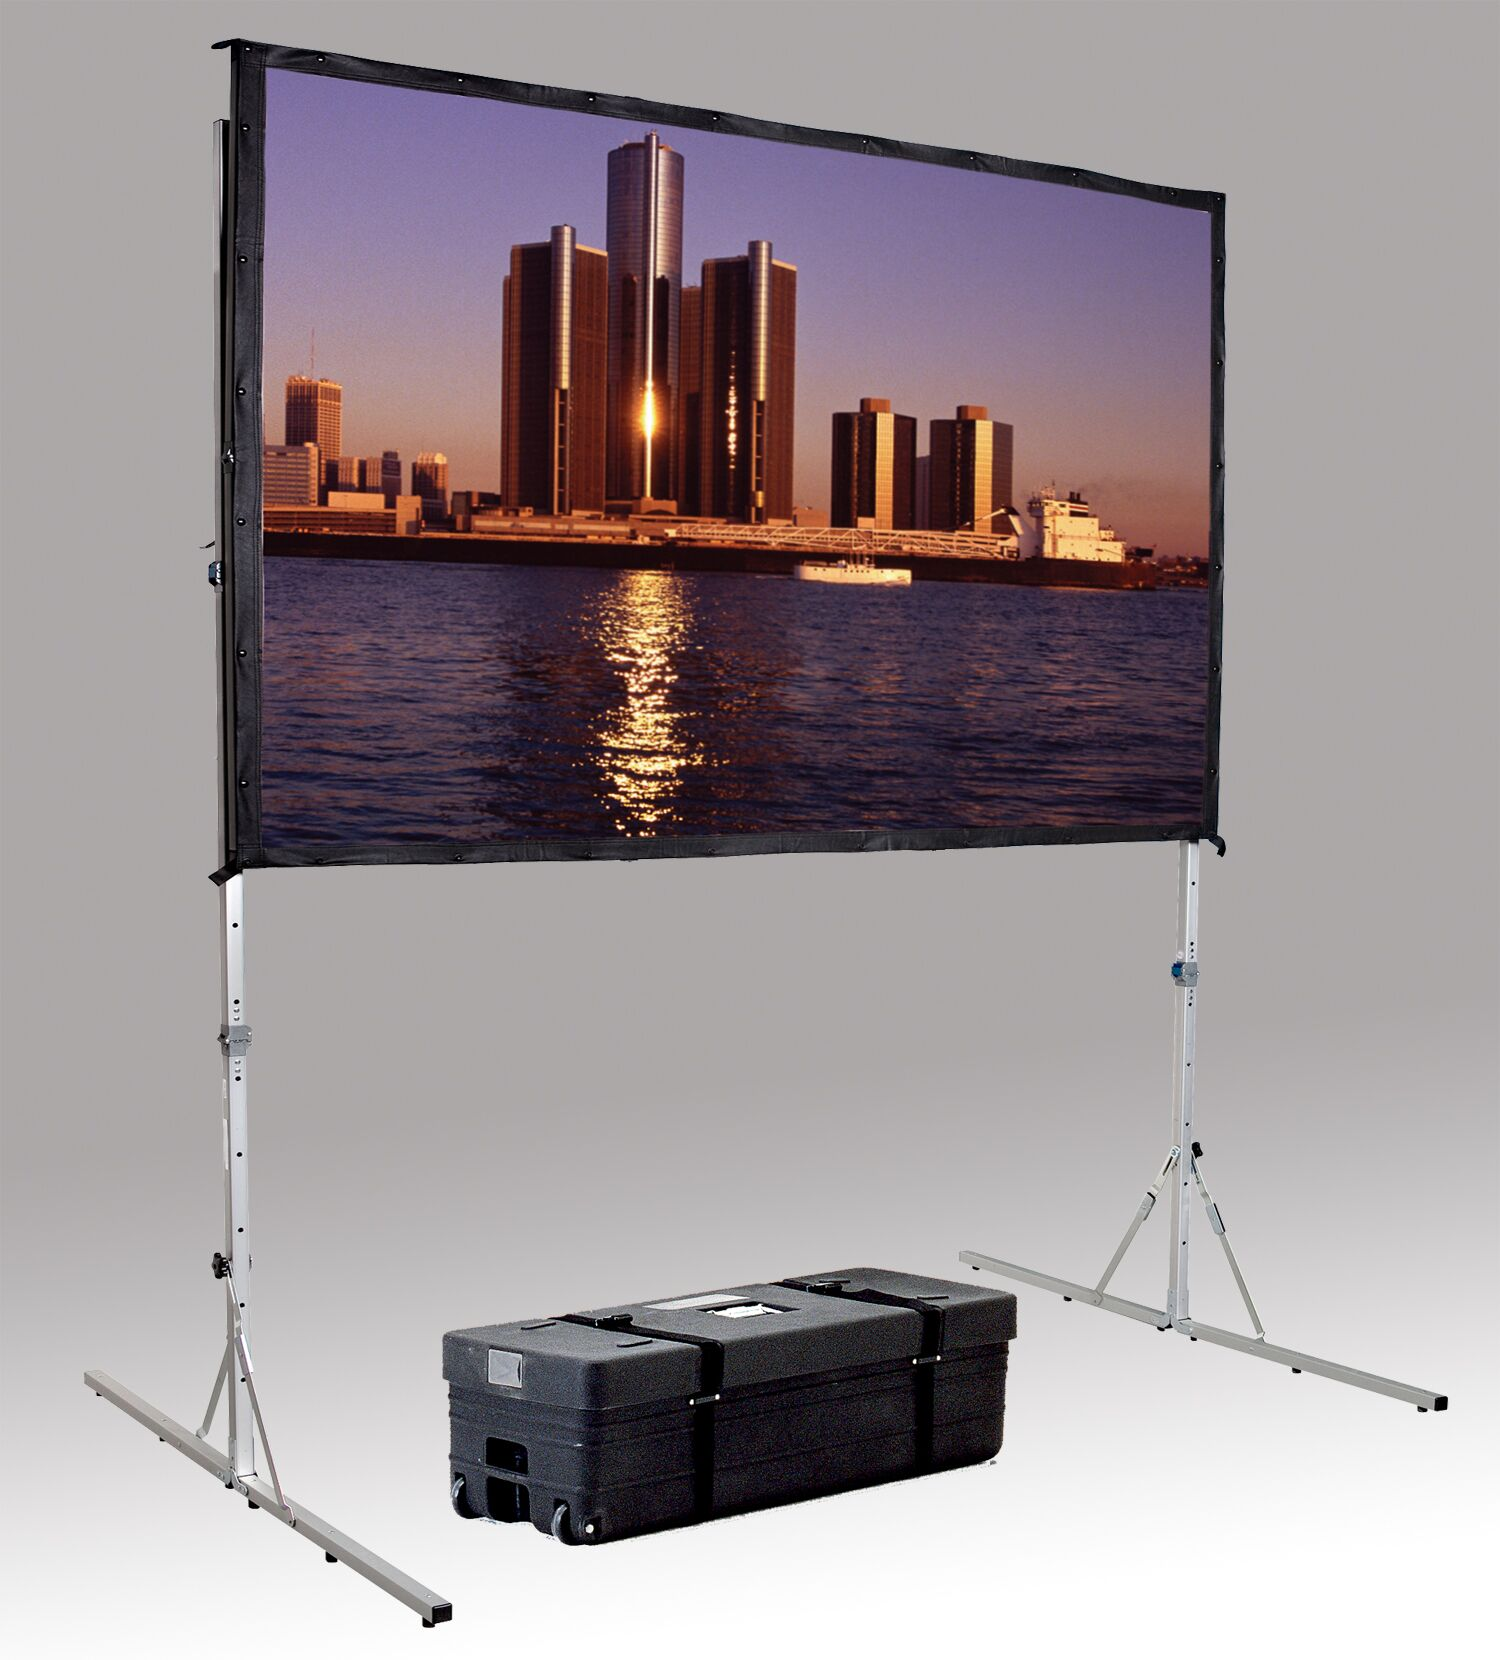 Fast Fold Deluxe Portable Projection Screen Viewing Area: 69